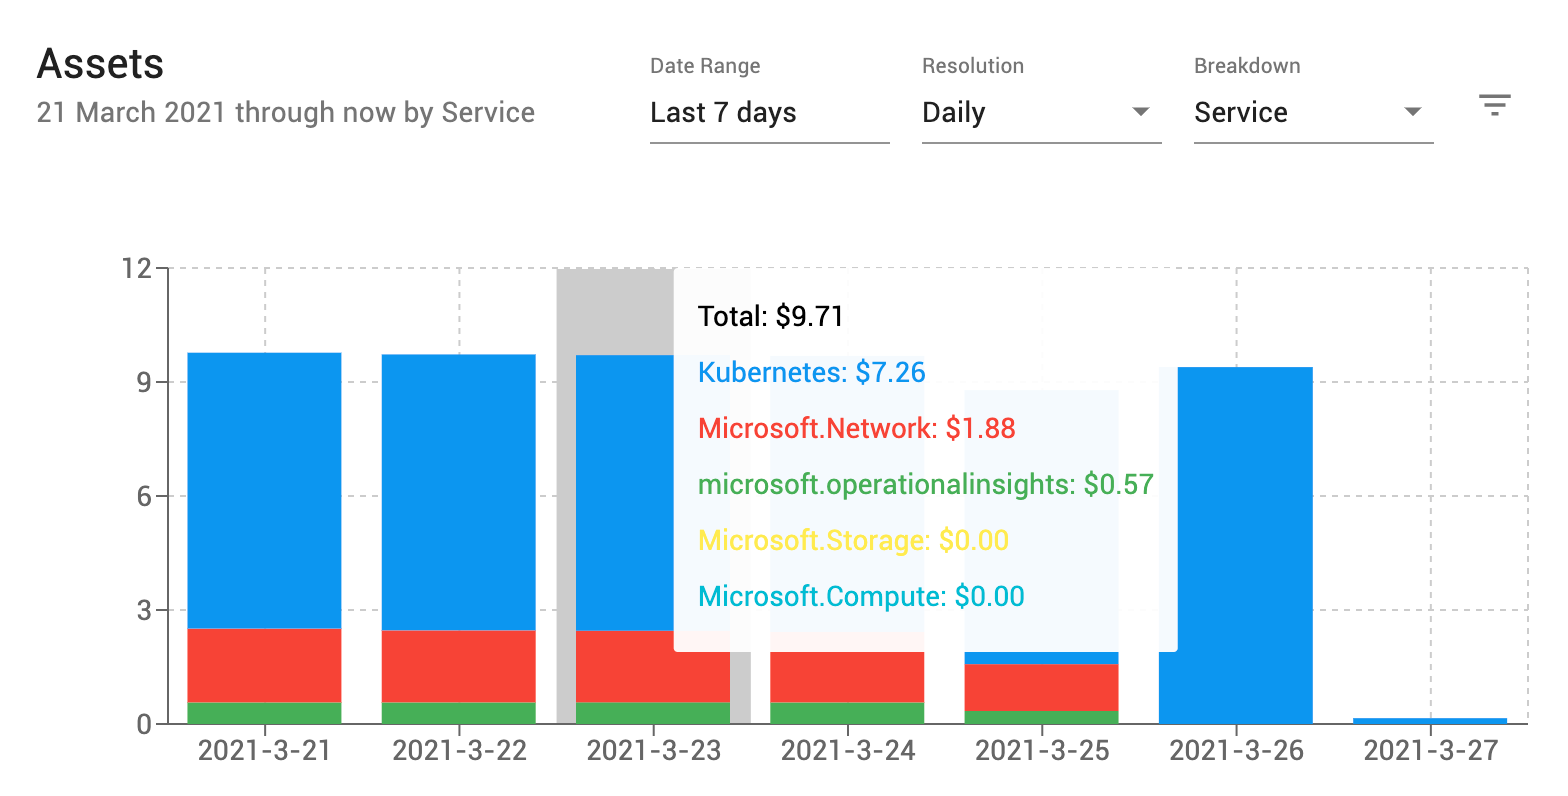 The Assets view shows all Azure spending, not just AKS